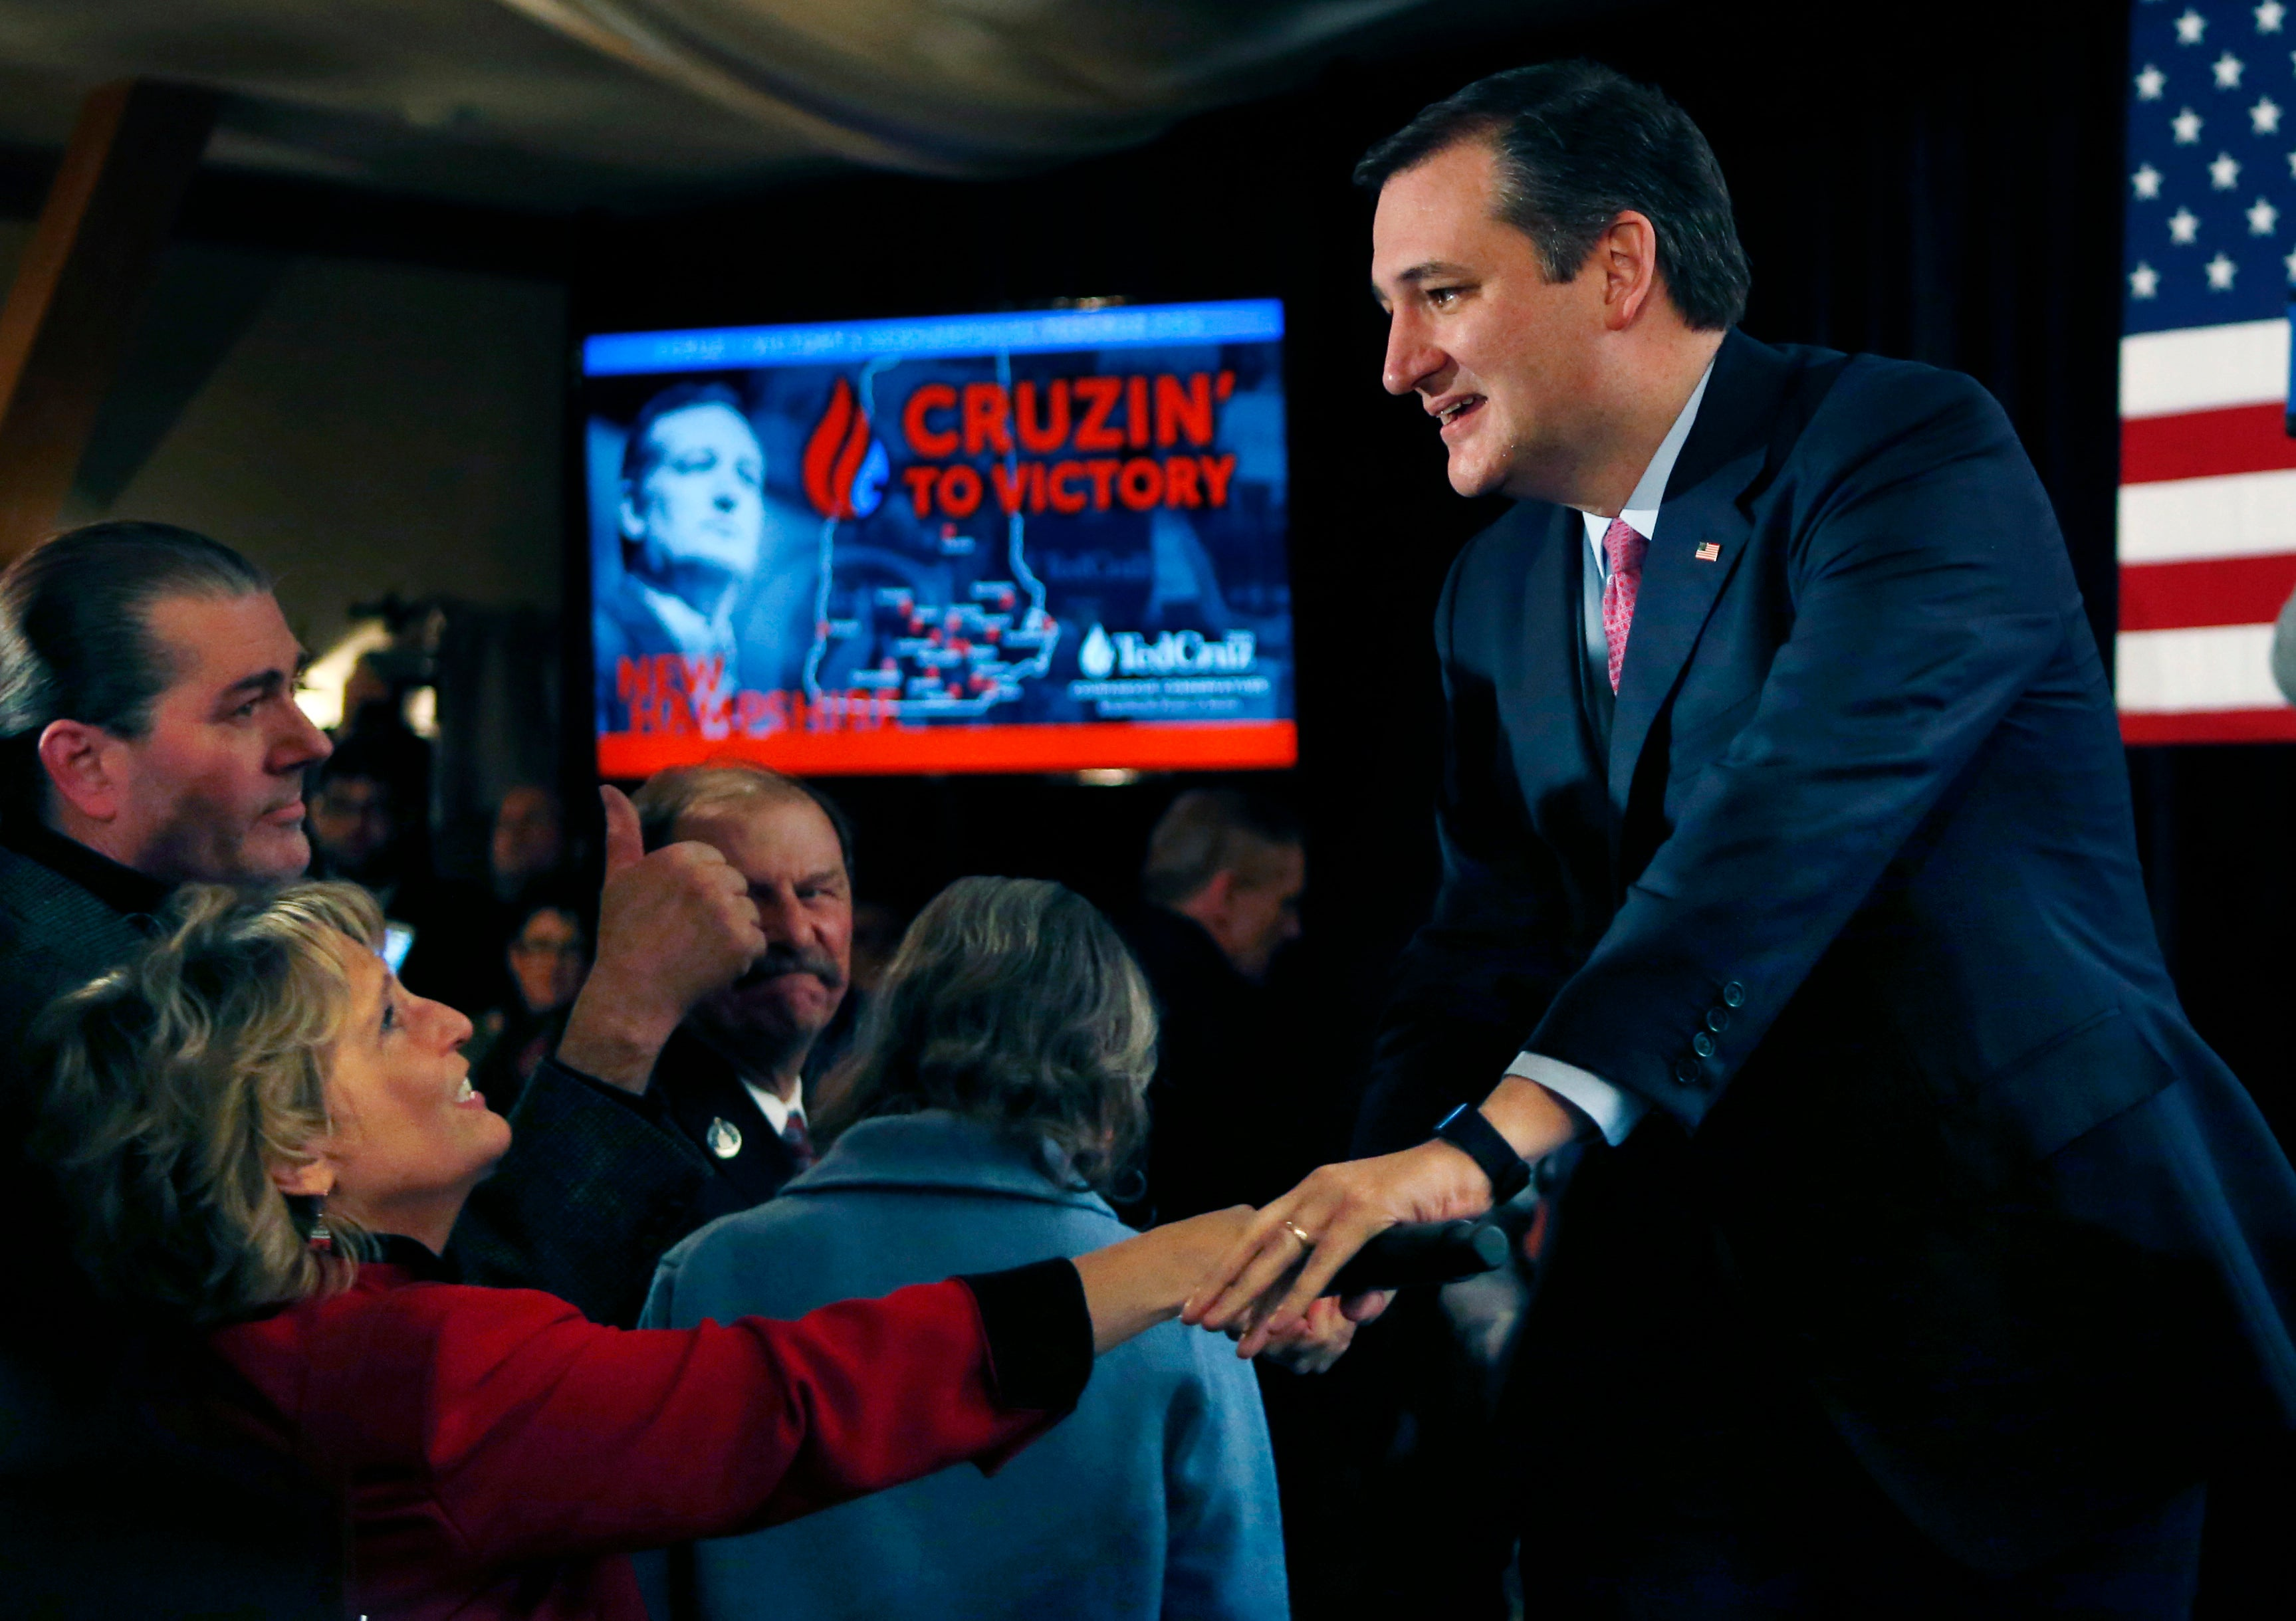 Cruz greets supporters on primary election night.